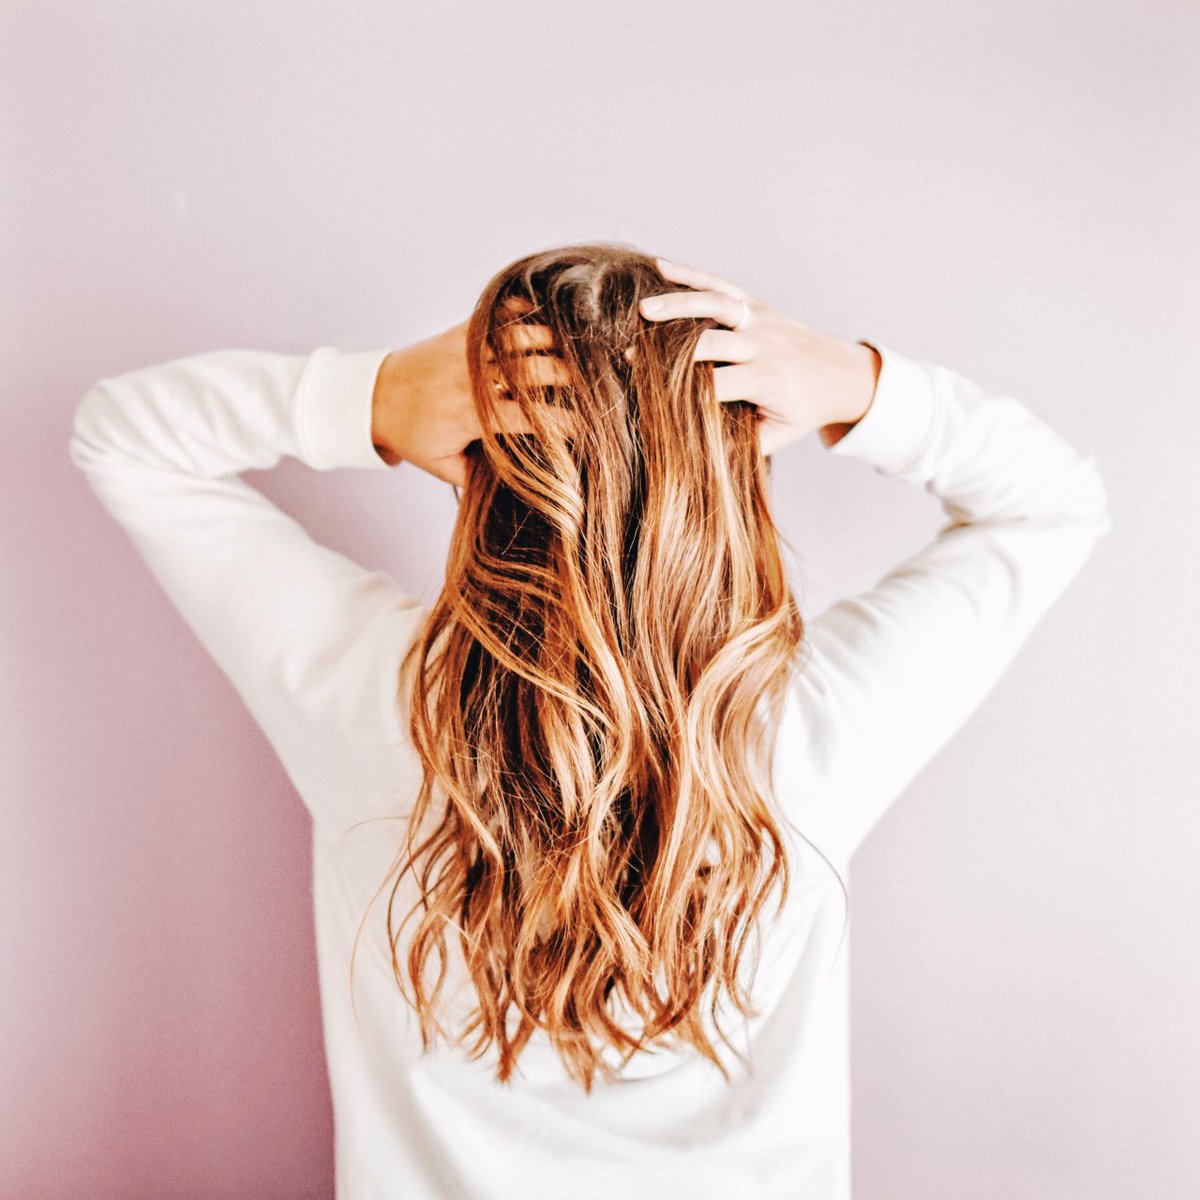 NEW BLOG POST: Postpartum Hair Loss - What You Need to Know  https://t.co/GK0m7osZkR  #postpartum #hairloss https://t.co/dQauVRozxs